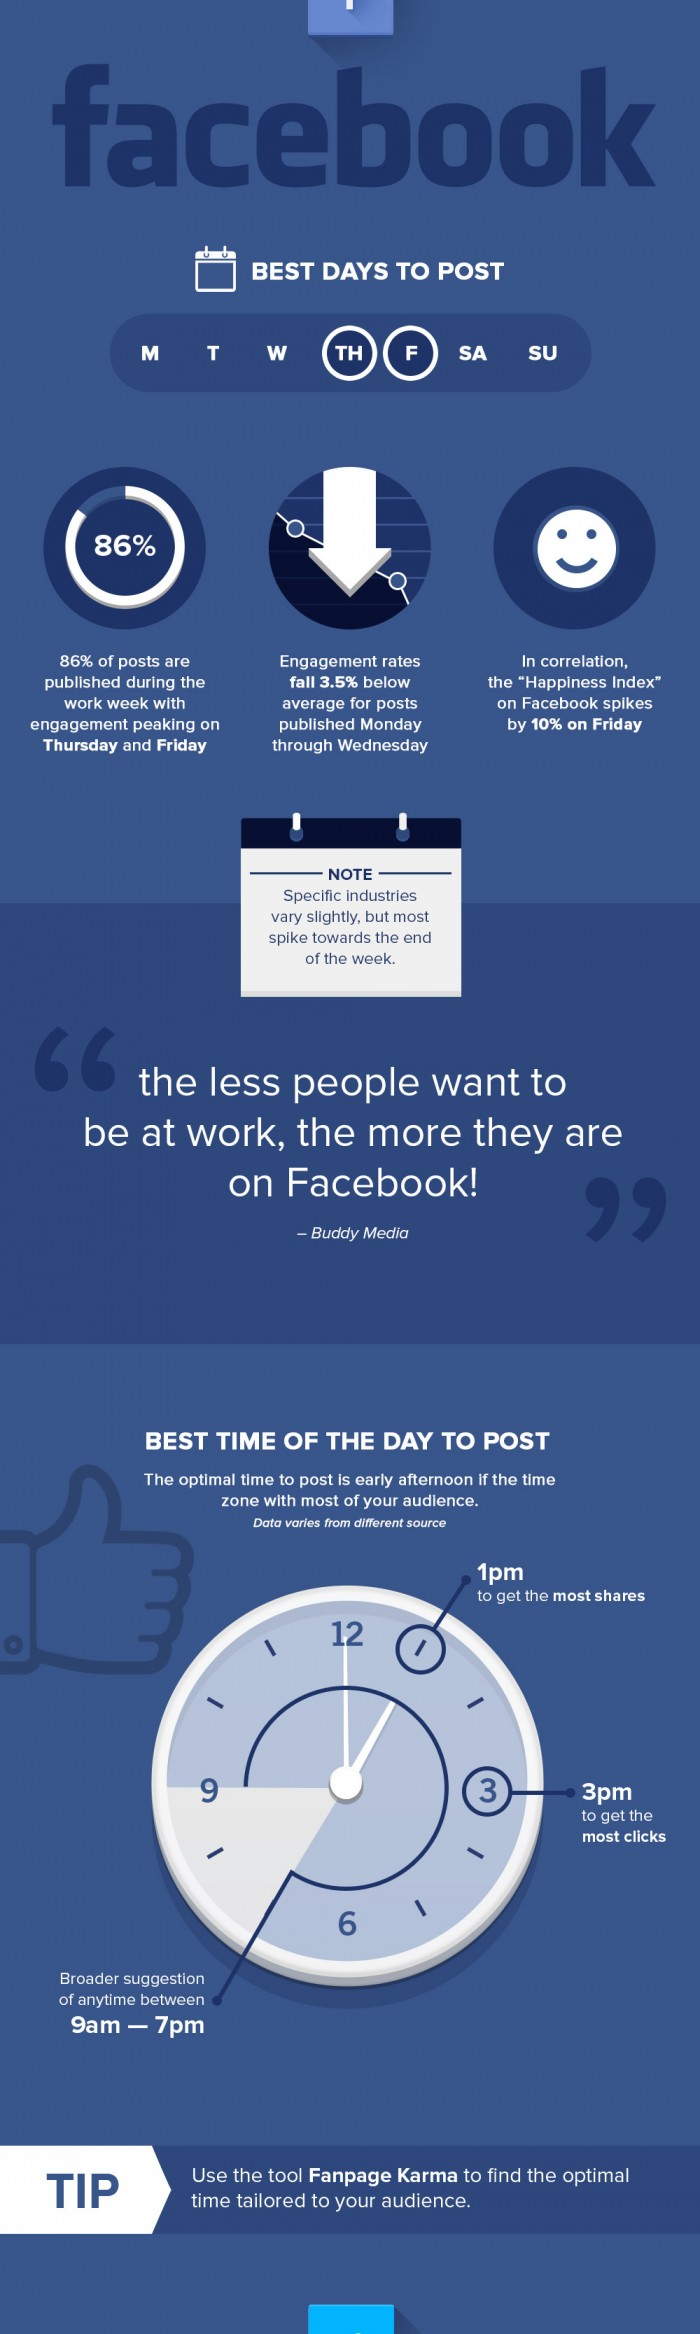 the best times to post on facebook to boost reach